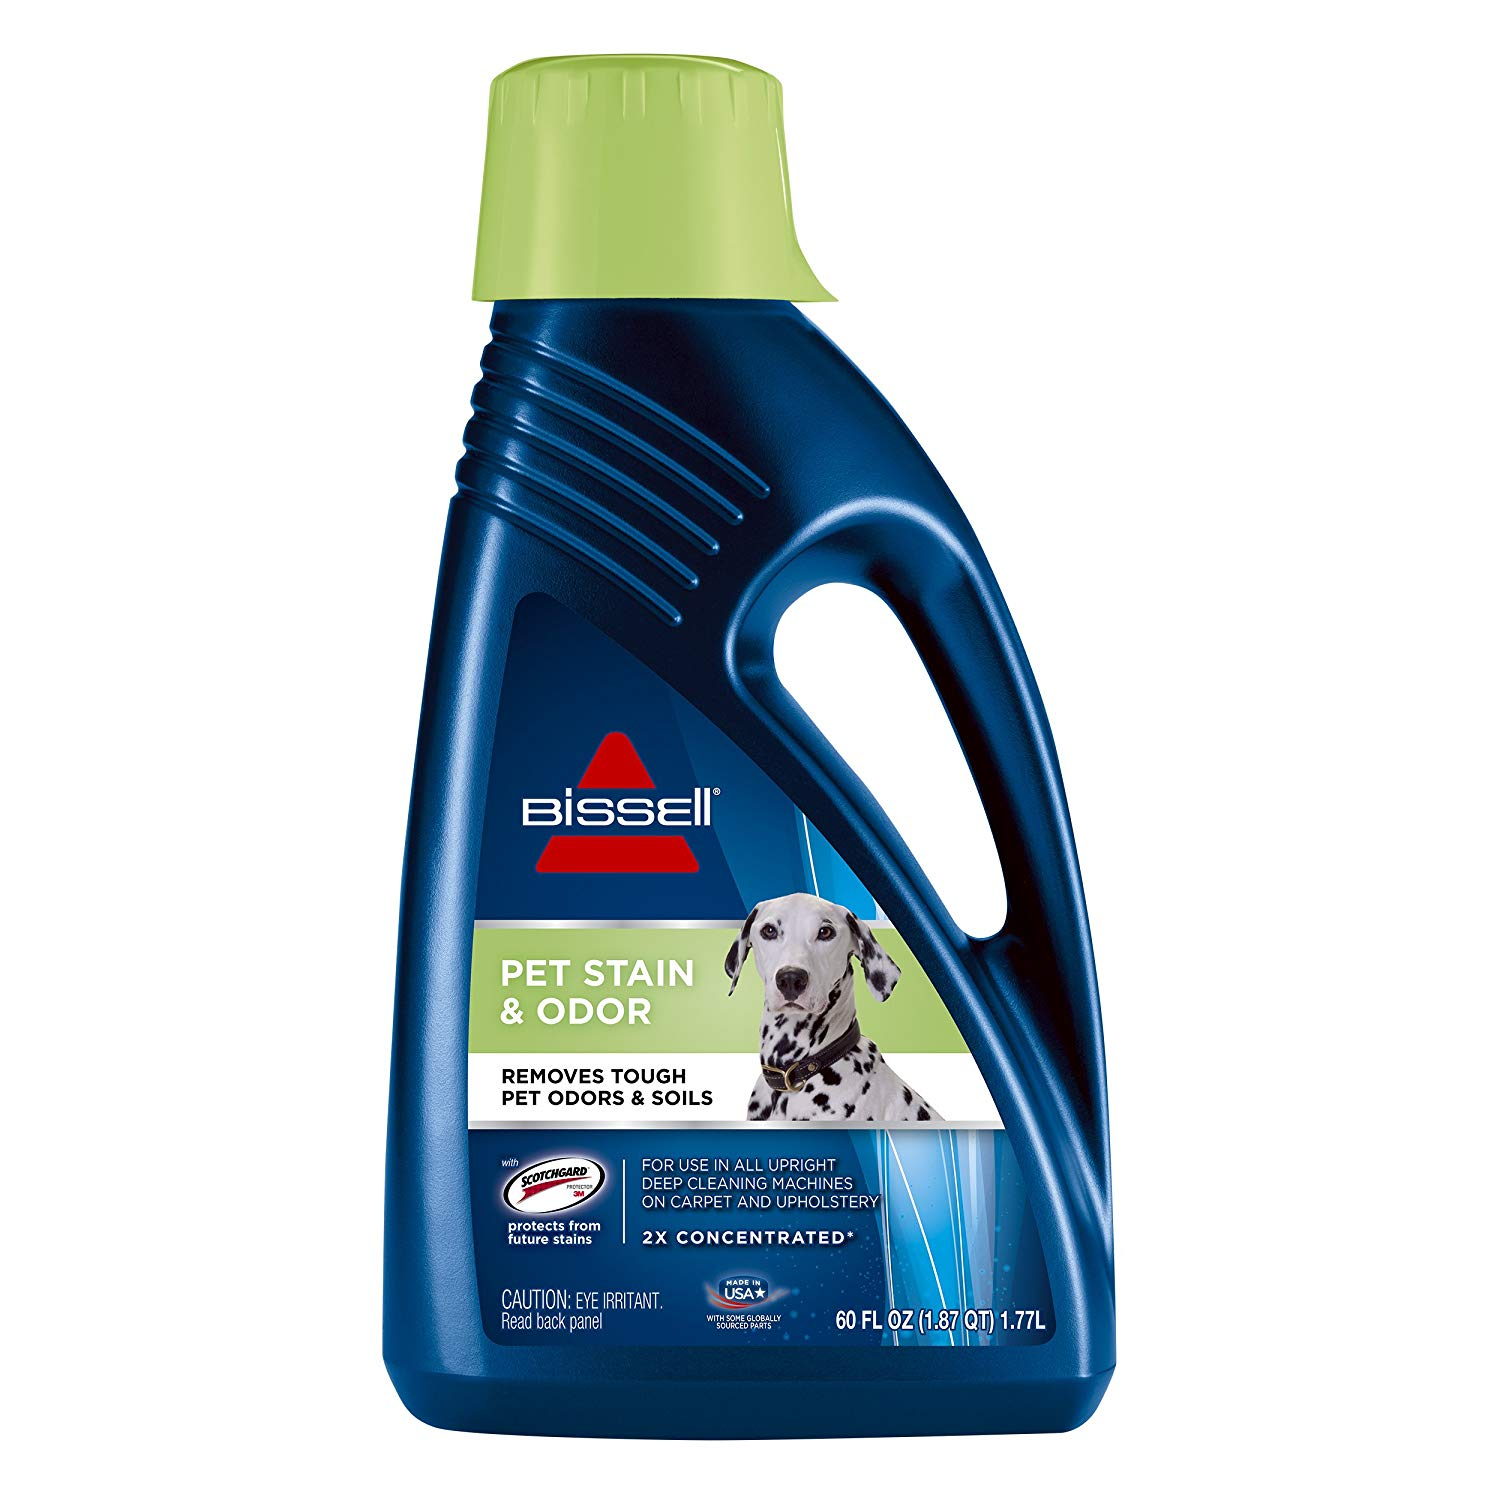 BISSELL 2X Pet Stain & Odor Full Size Machine Formula-Best Solution for Deep Cleaners